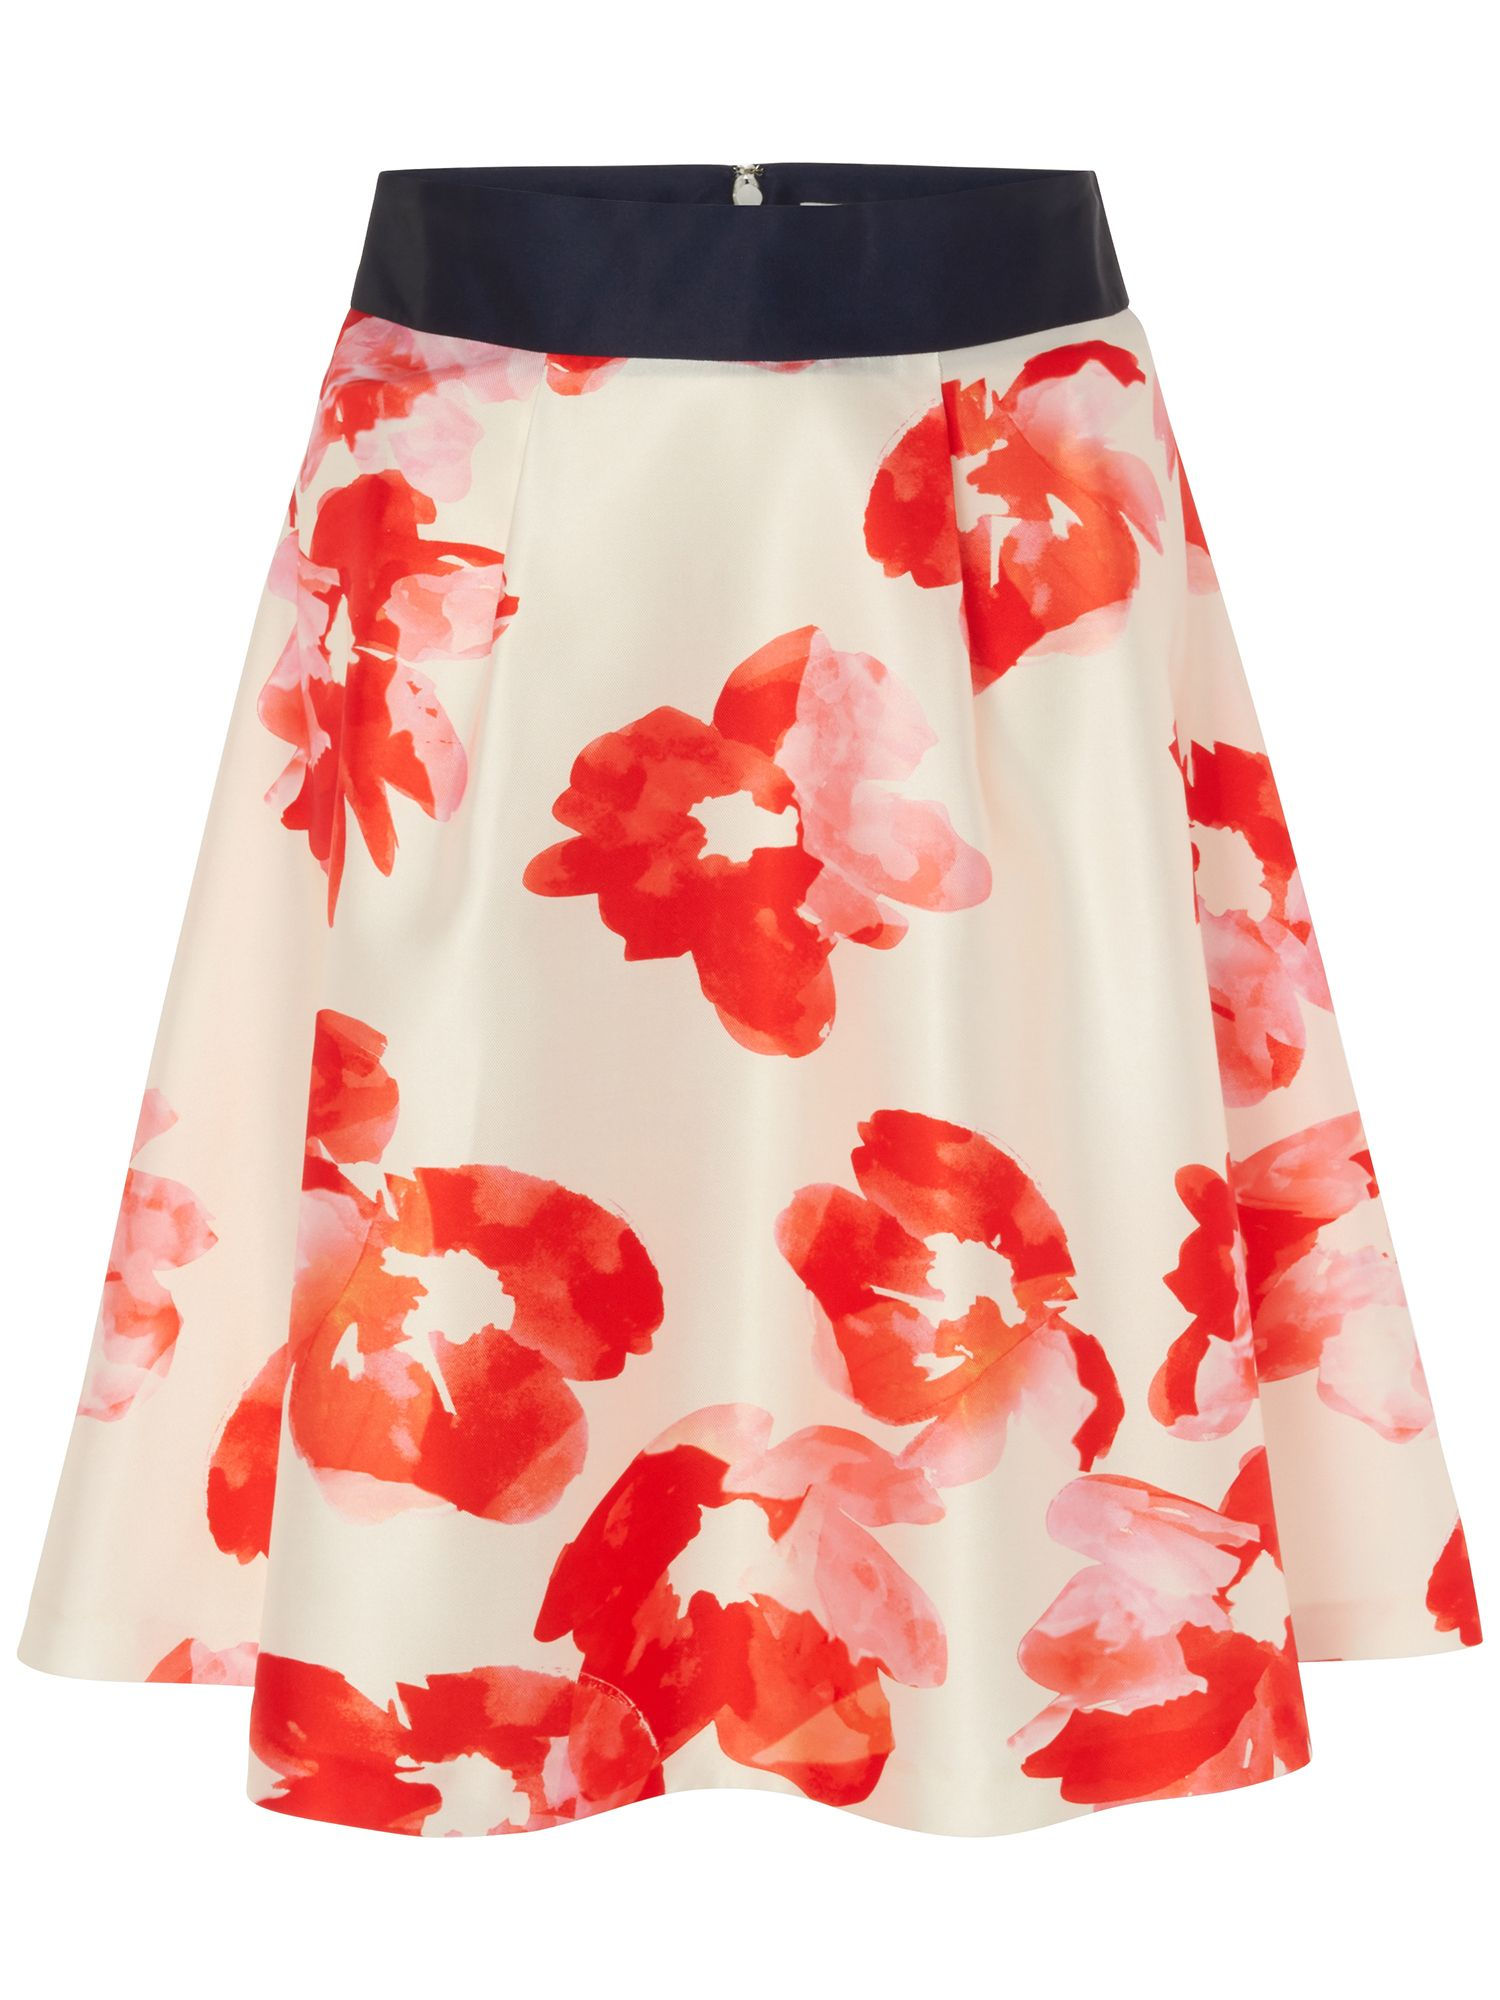 Studio 8 Belle Skirt, Multi-Coloured